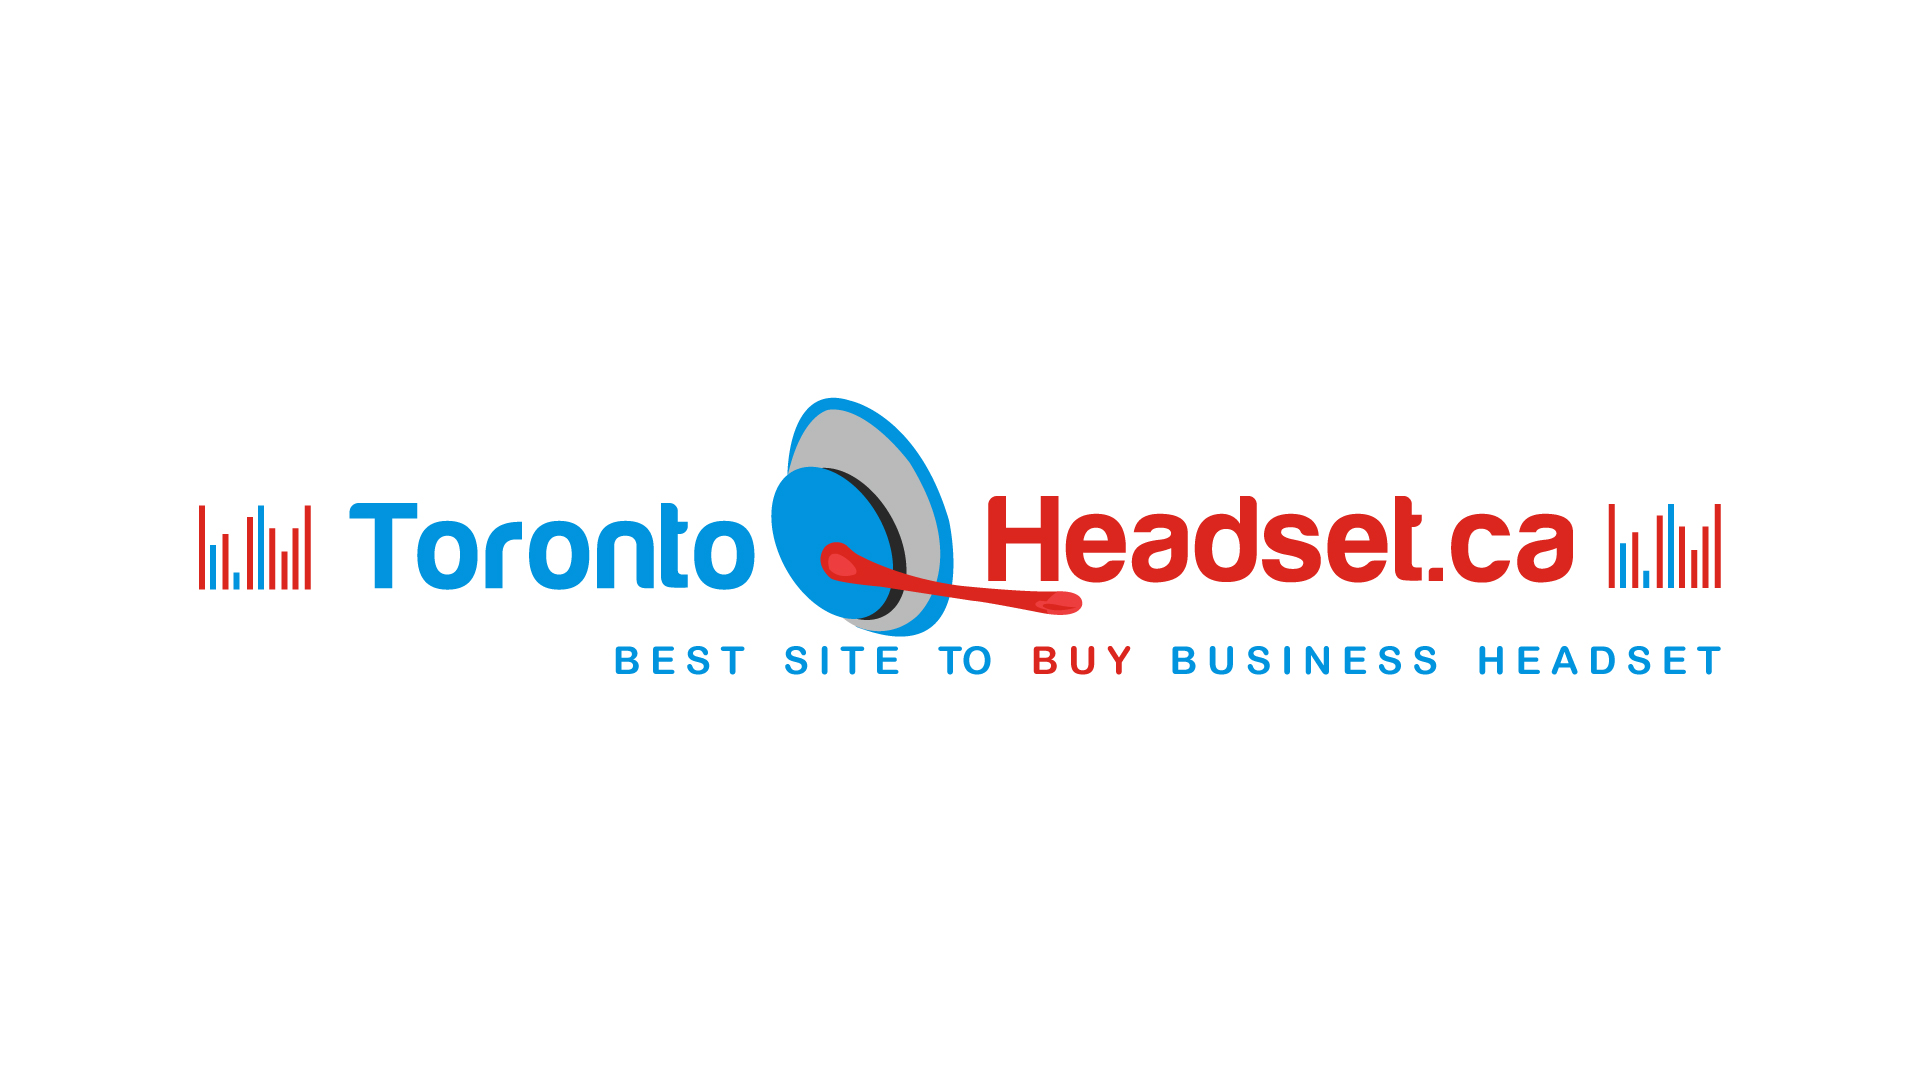 TorontoHeadset.ca – your destination for professional headset